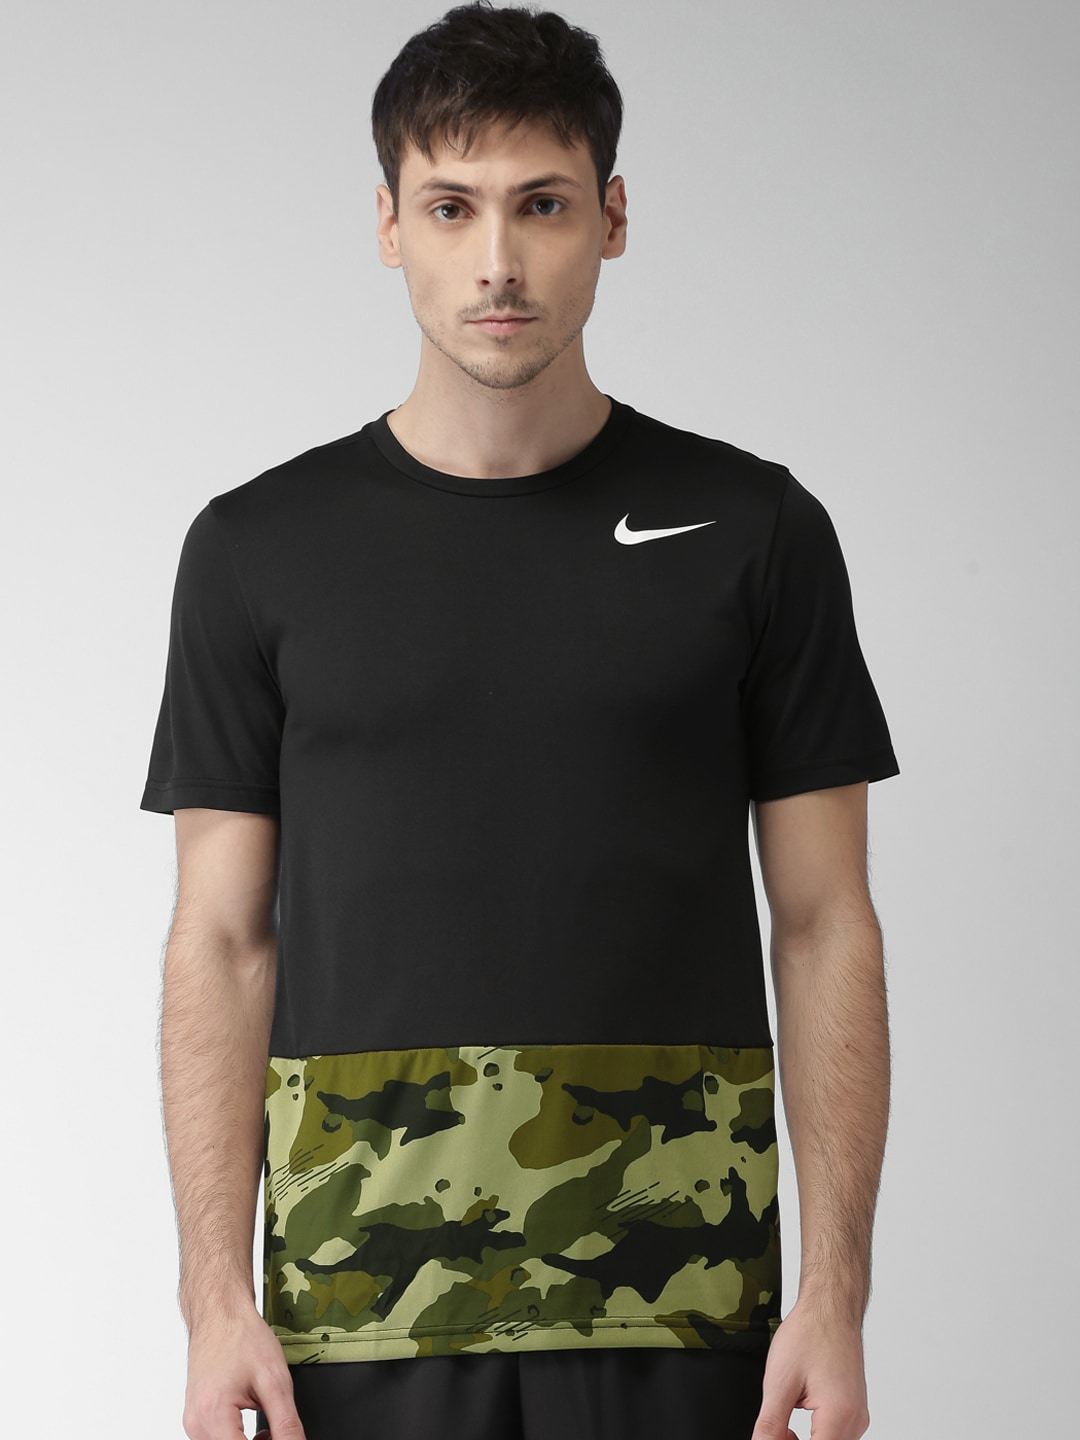 Nike TShirts - Buy Nike T-shirts Online in India  4c44087a7